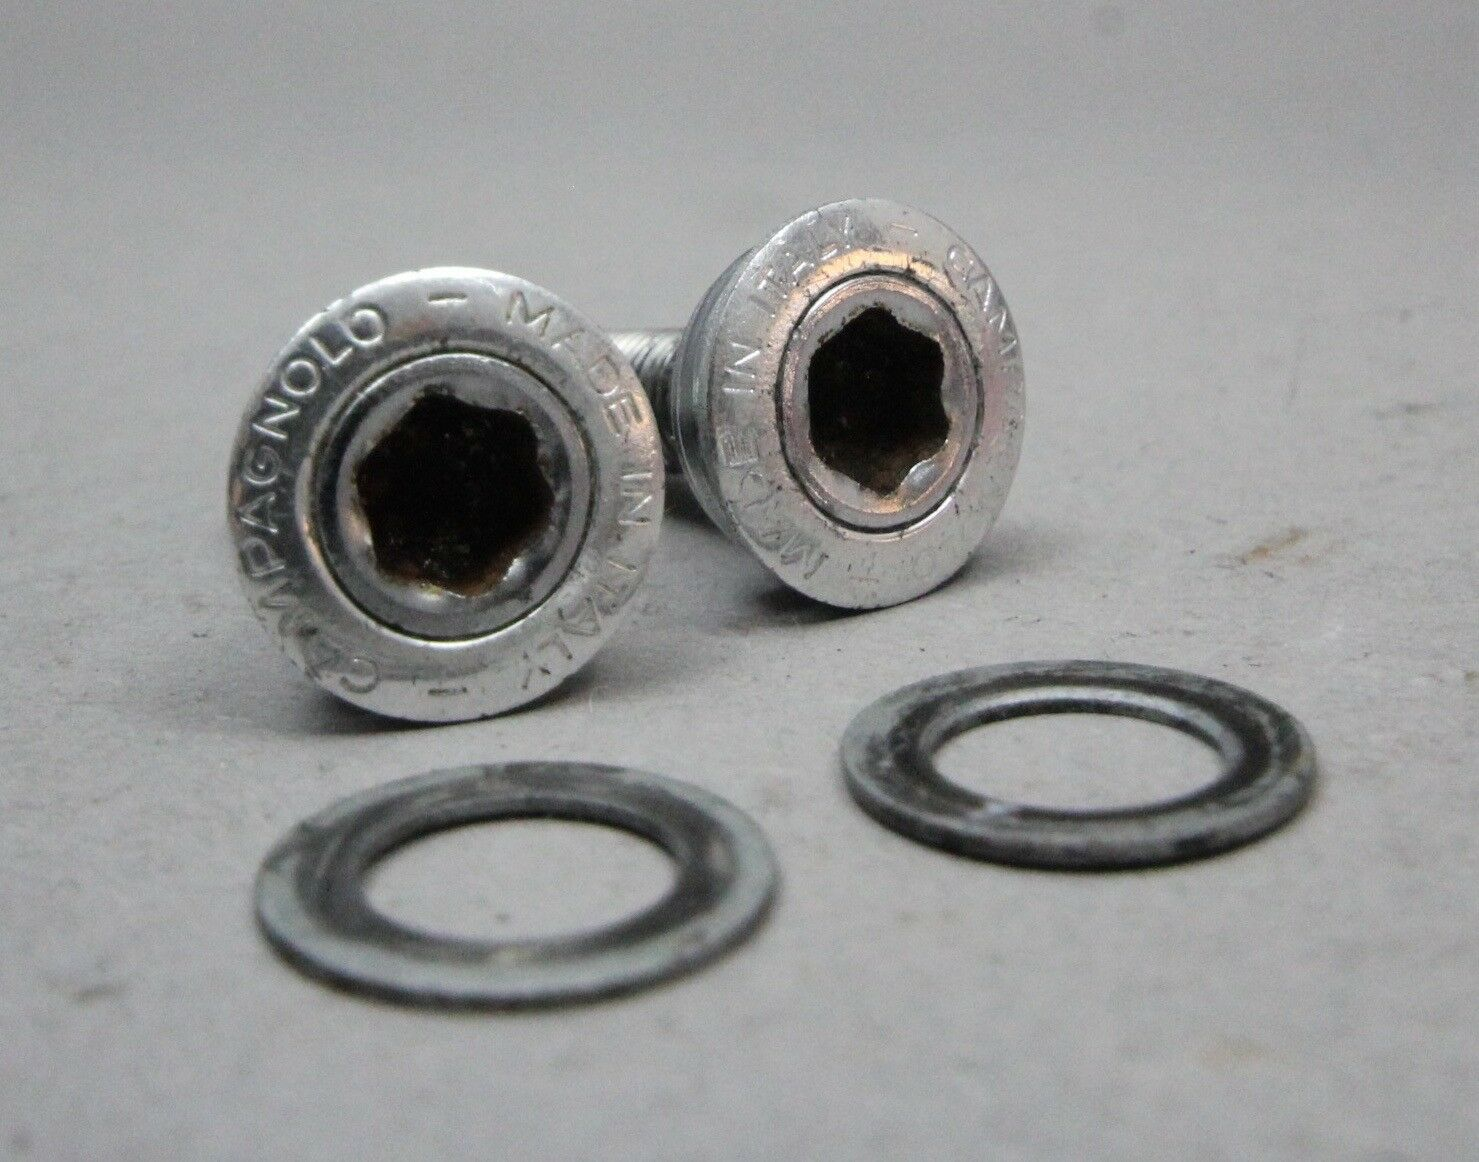 Campagnolo Record Crank Bolt  Pair   Strada Kurbel 1995 9s 10s  free and fast delivery available